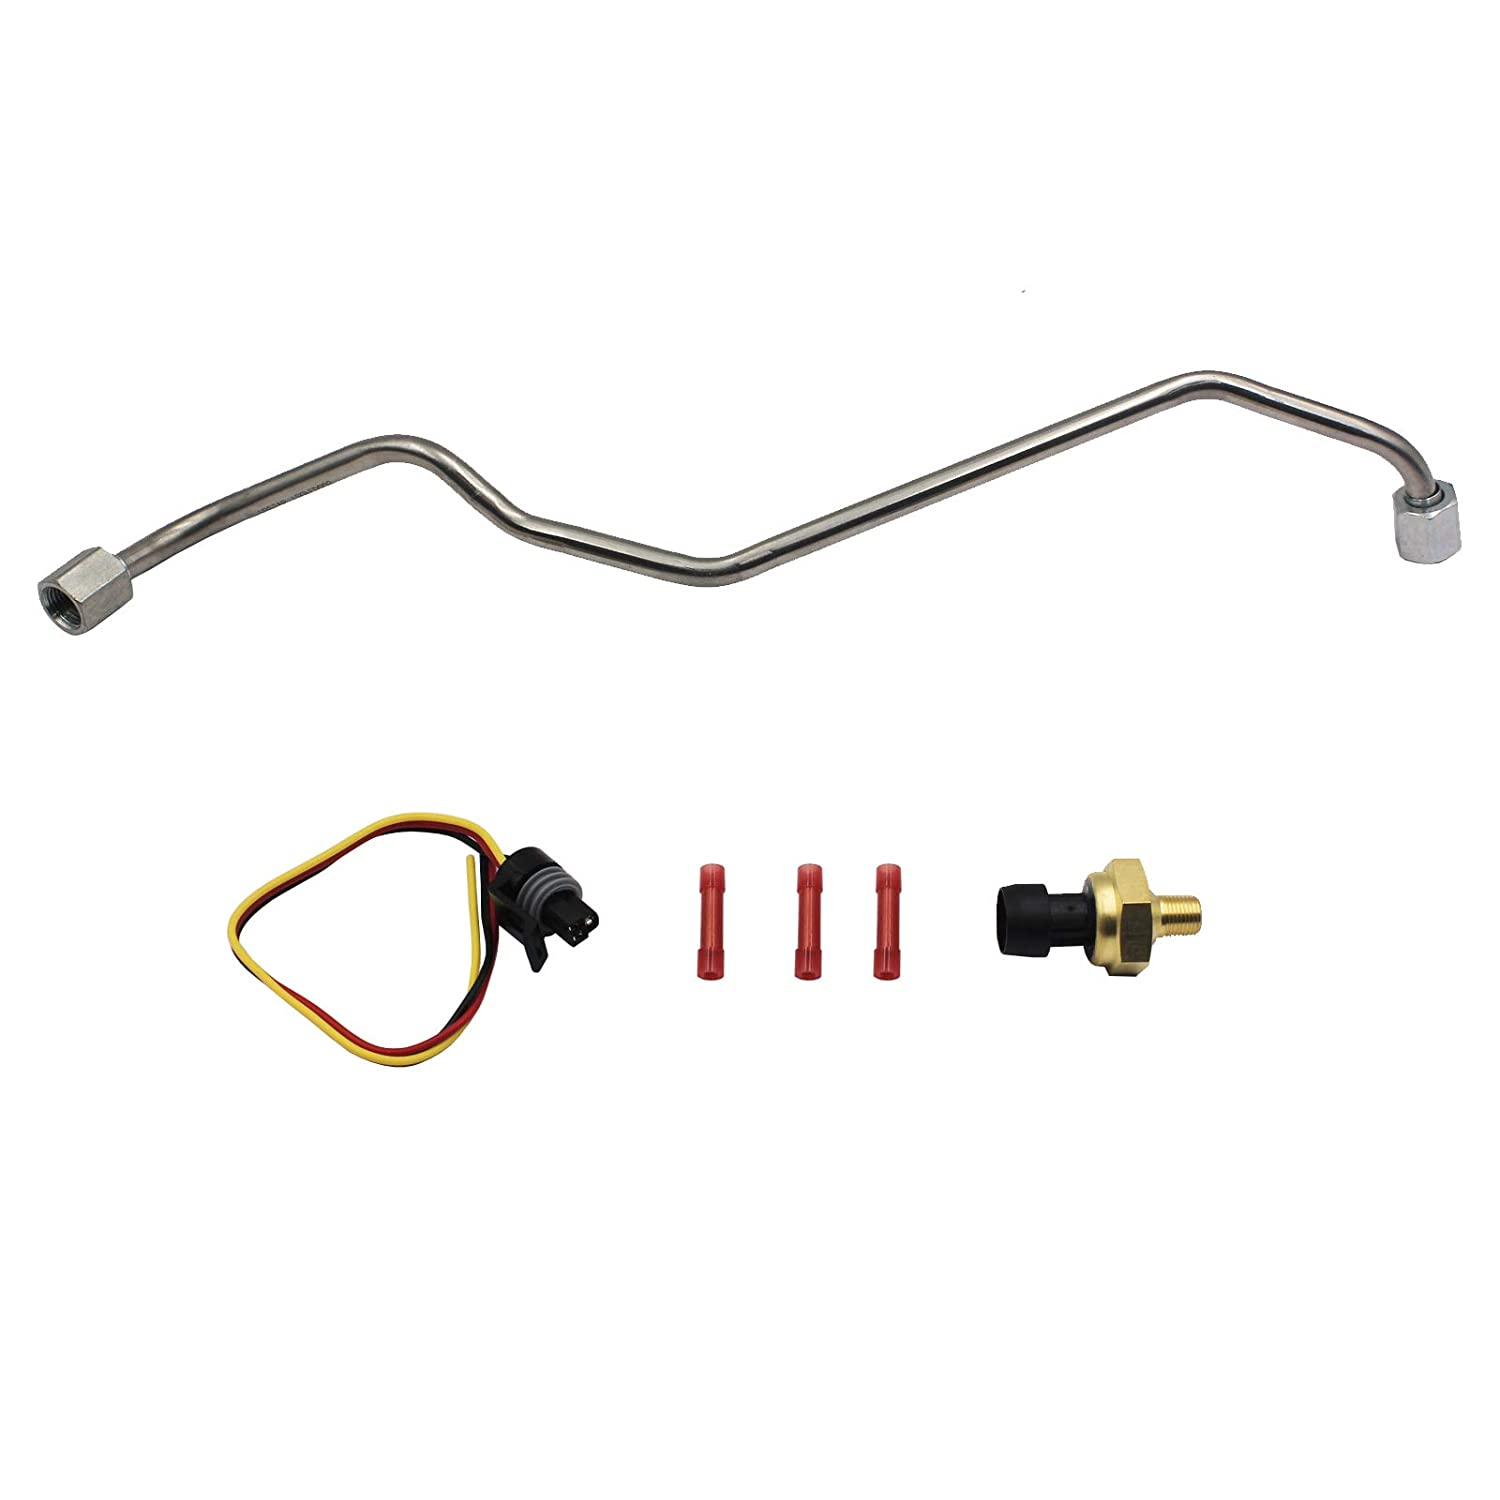 YHB Exhaust Back Pressure EBP National uniform free free shipping shipping for Tube Wire Sensor Replacement